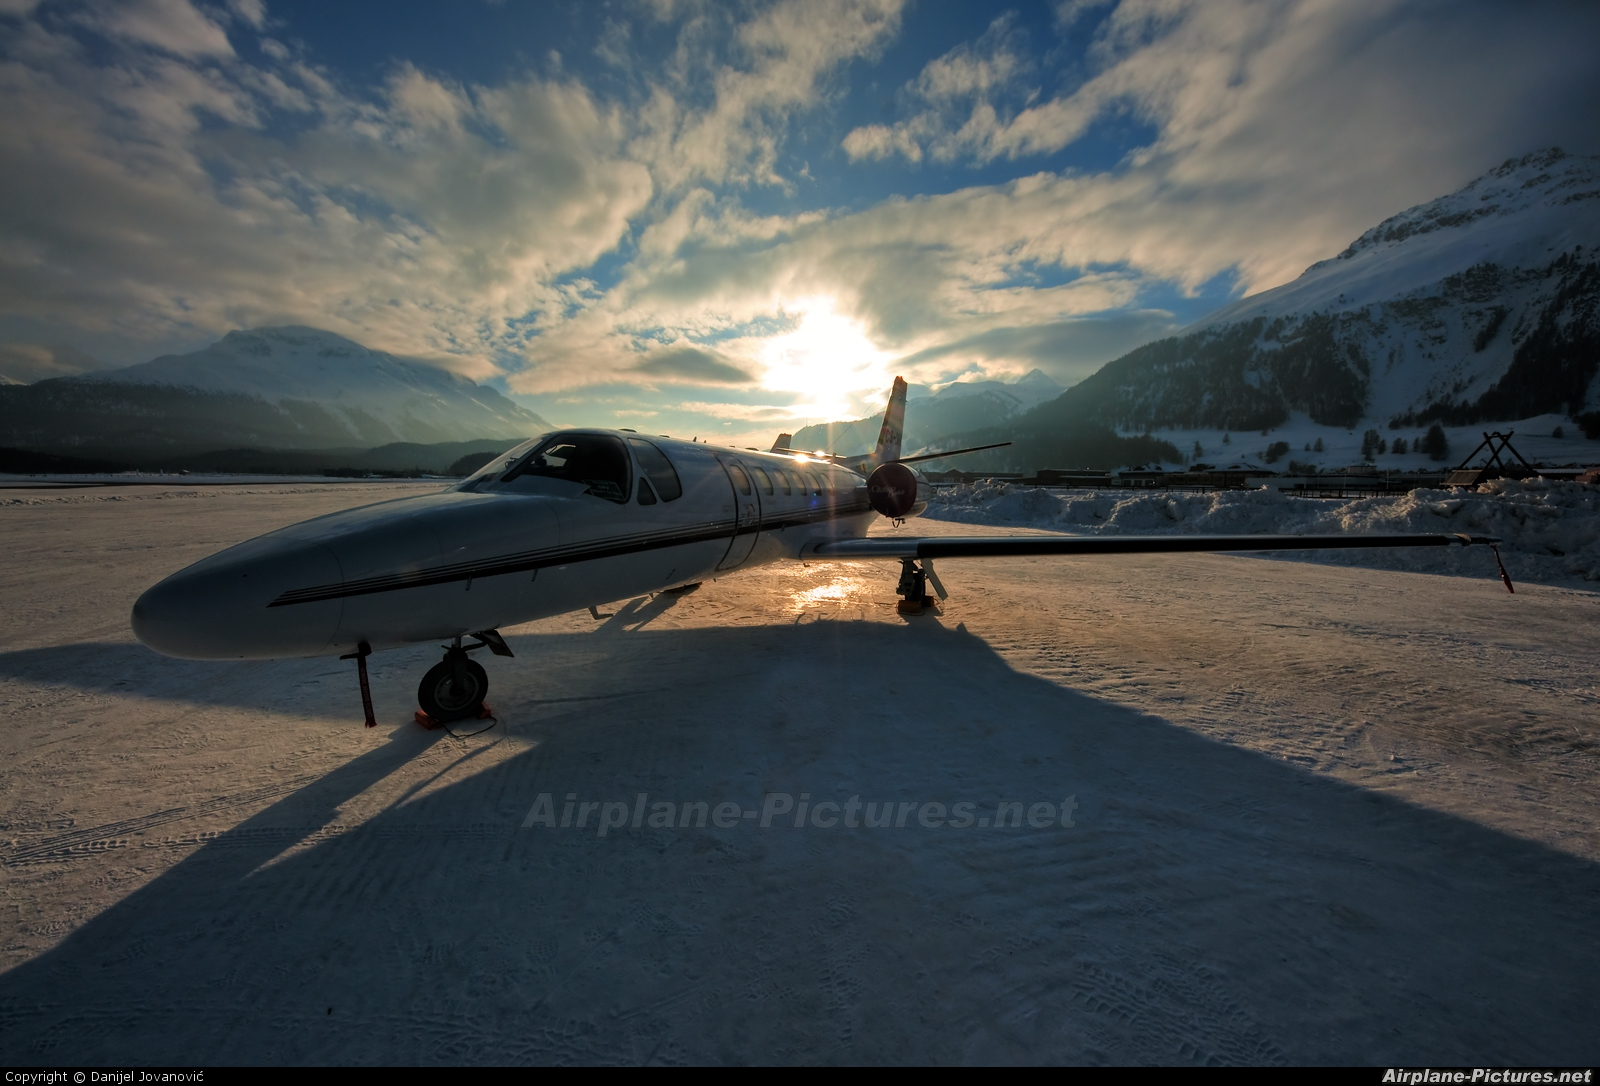 NetJets Europe (Portugal) CS-DHB aircraft at Samedan - Engadin